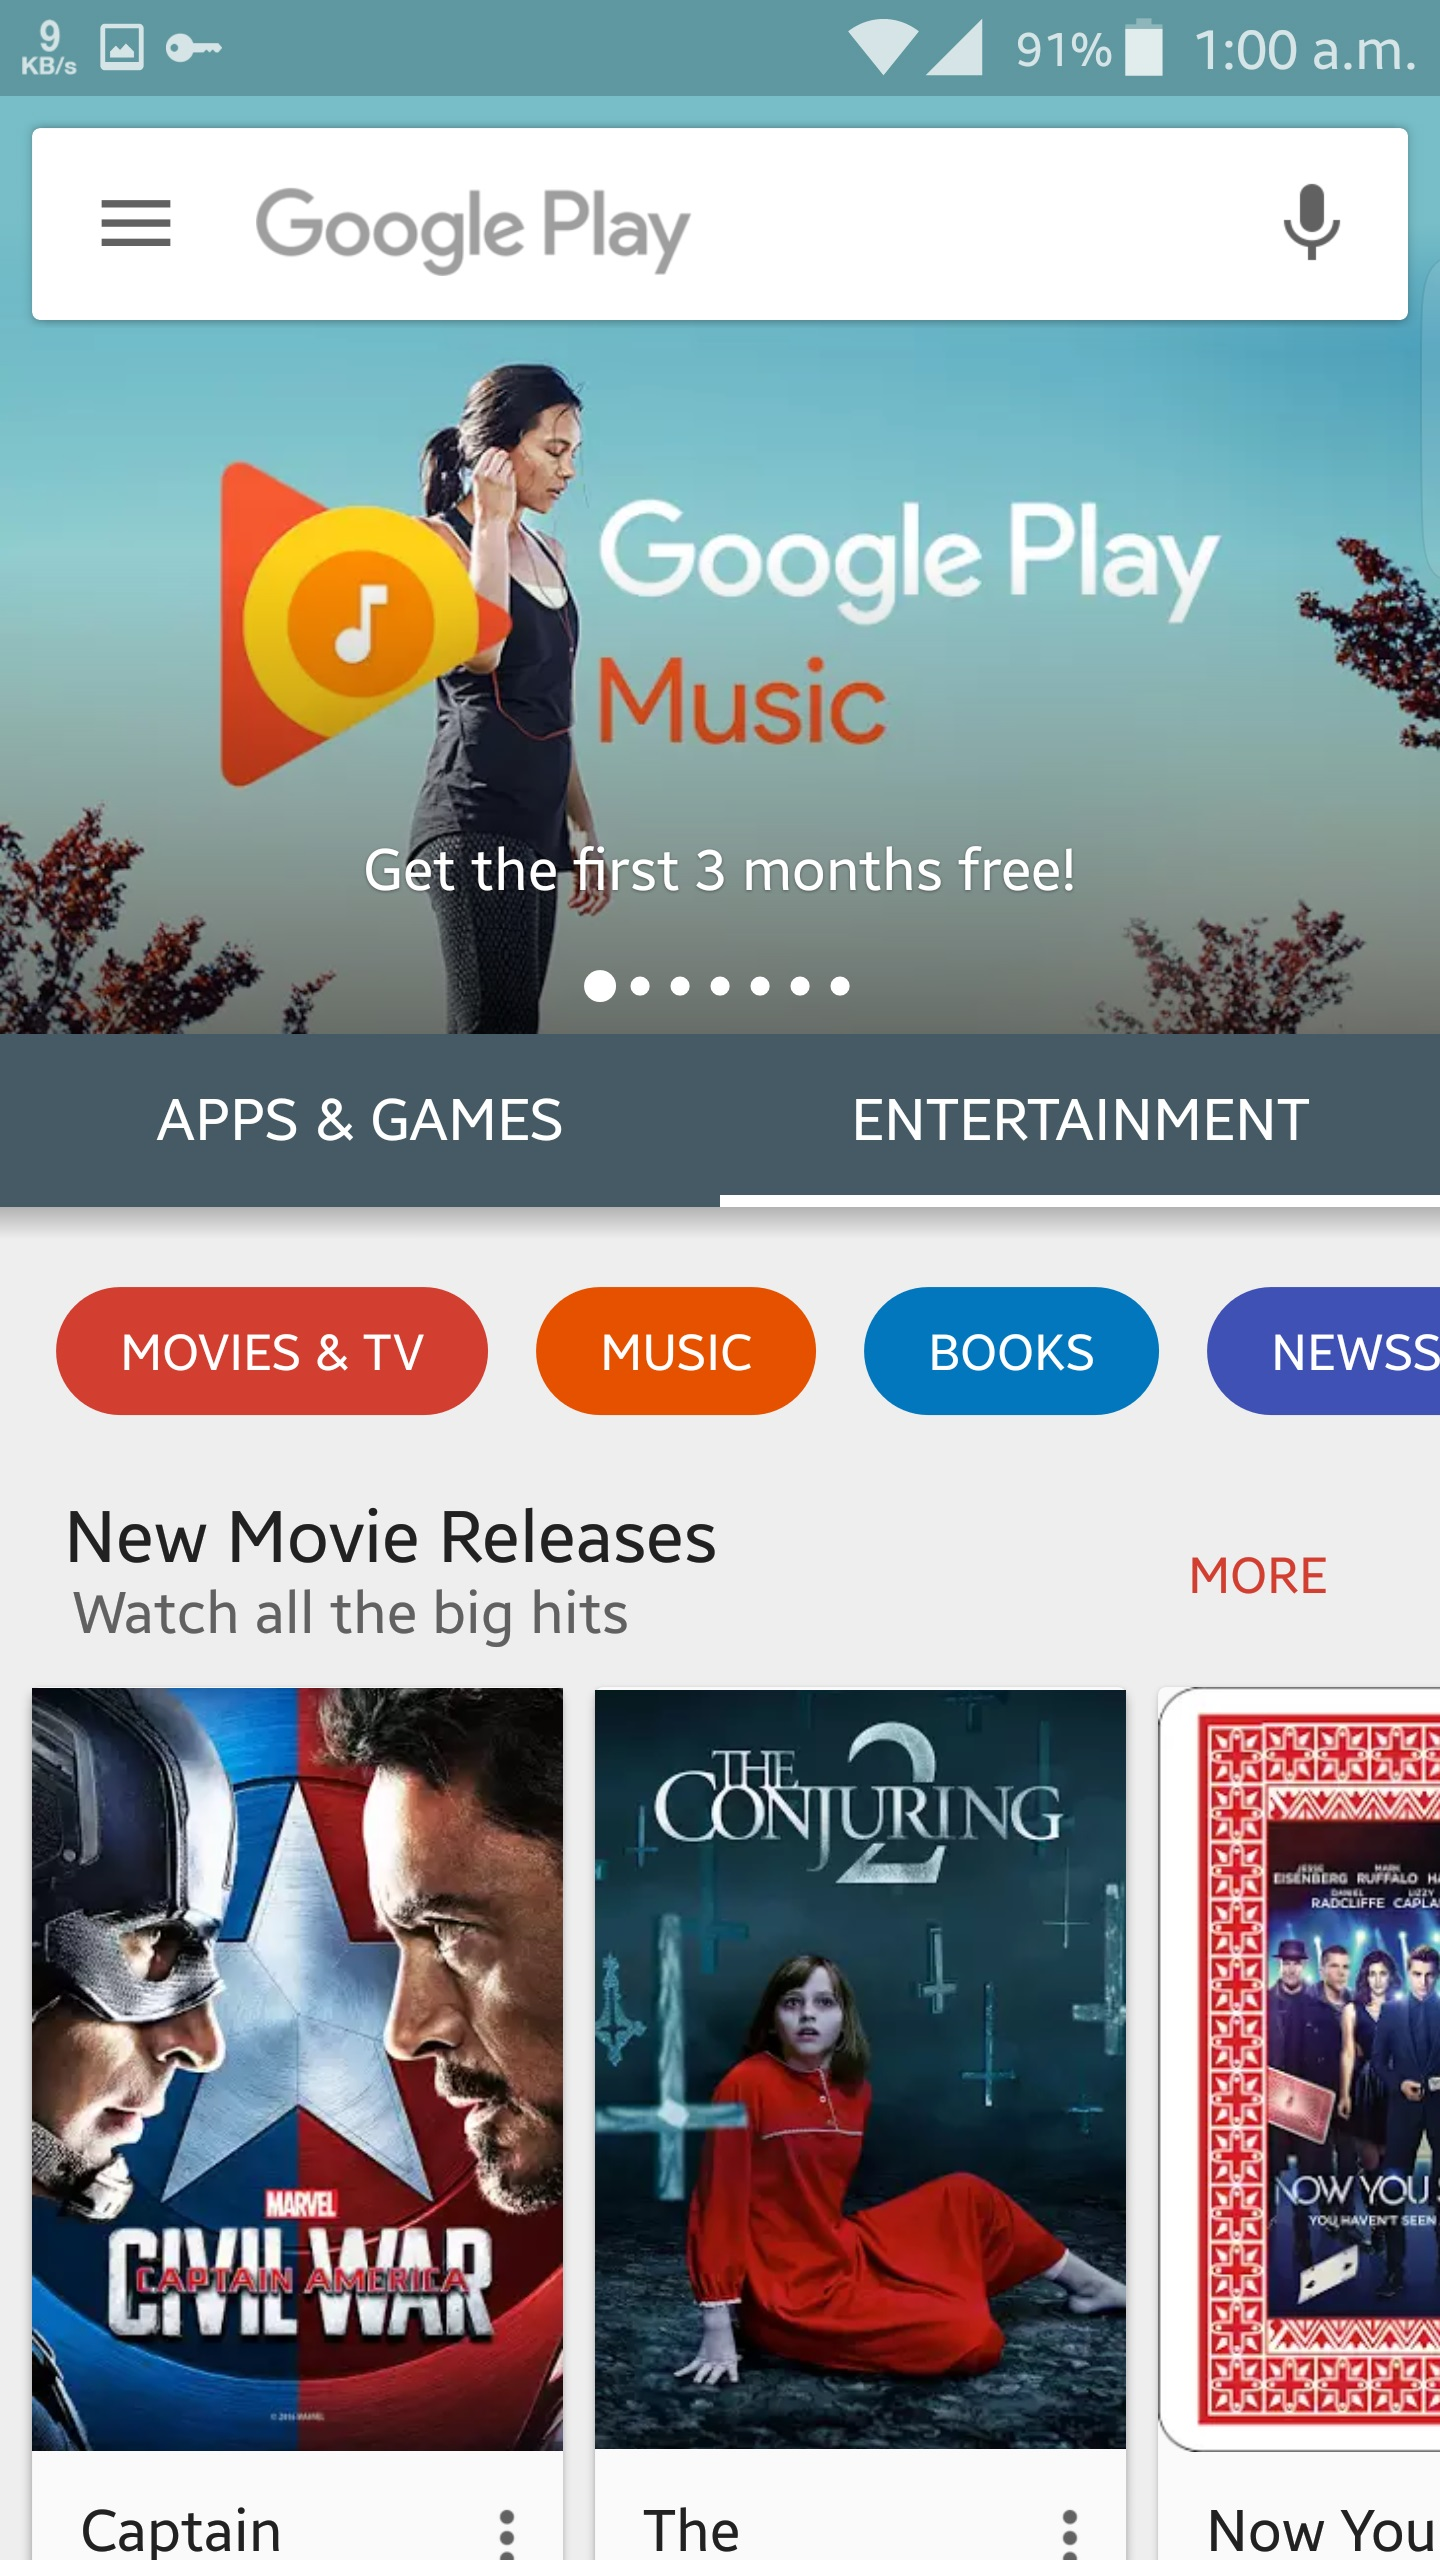 Country-Change-Google-Play-Store-United-States (7)